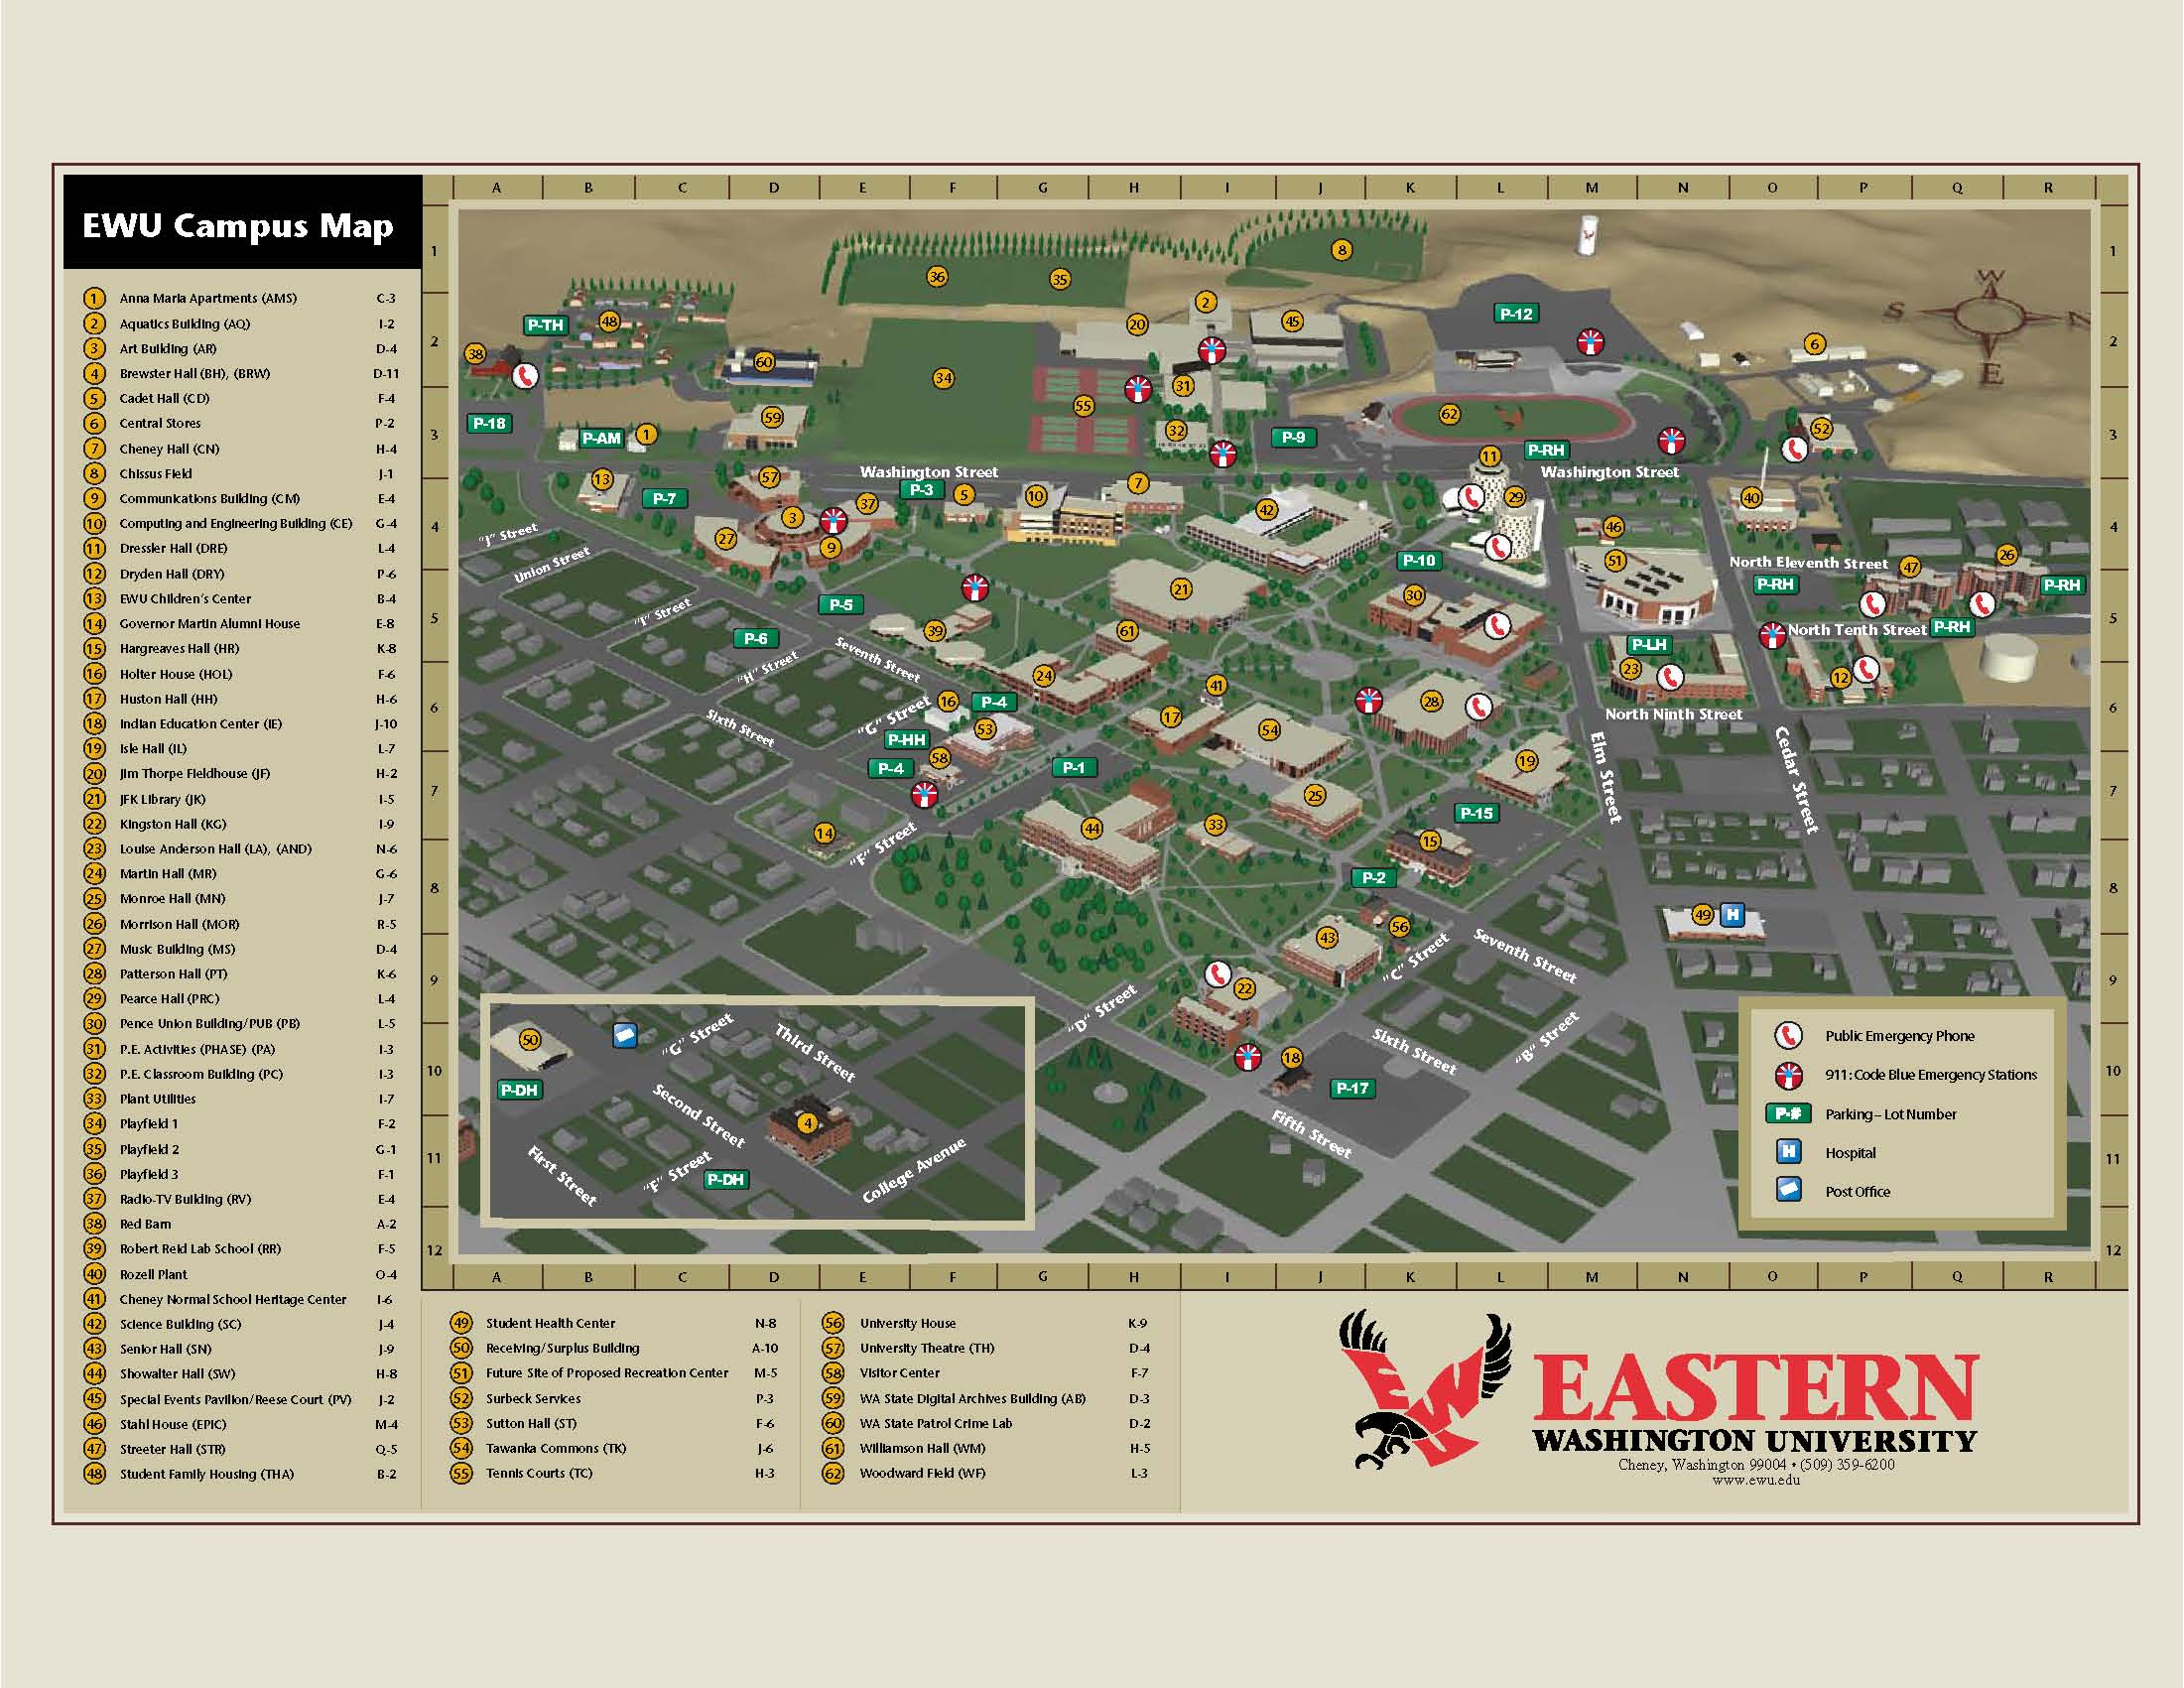 eastern washington university campus map Eastern Washington University Campus Map Cheney Washington Mappery eastern washington university campus map